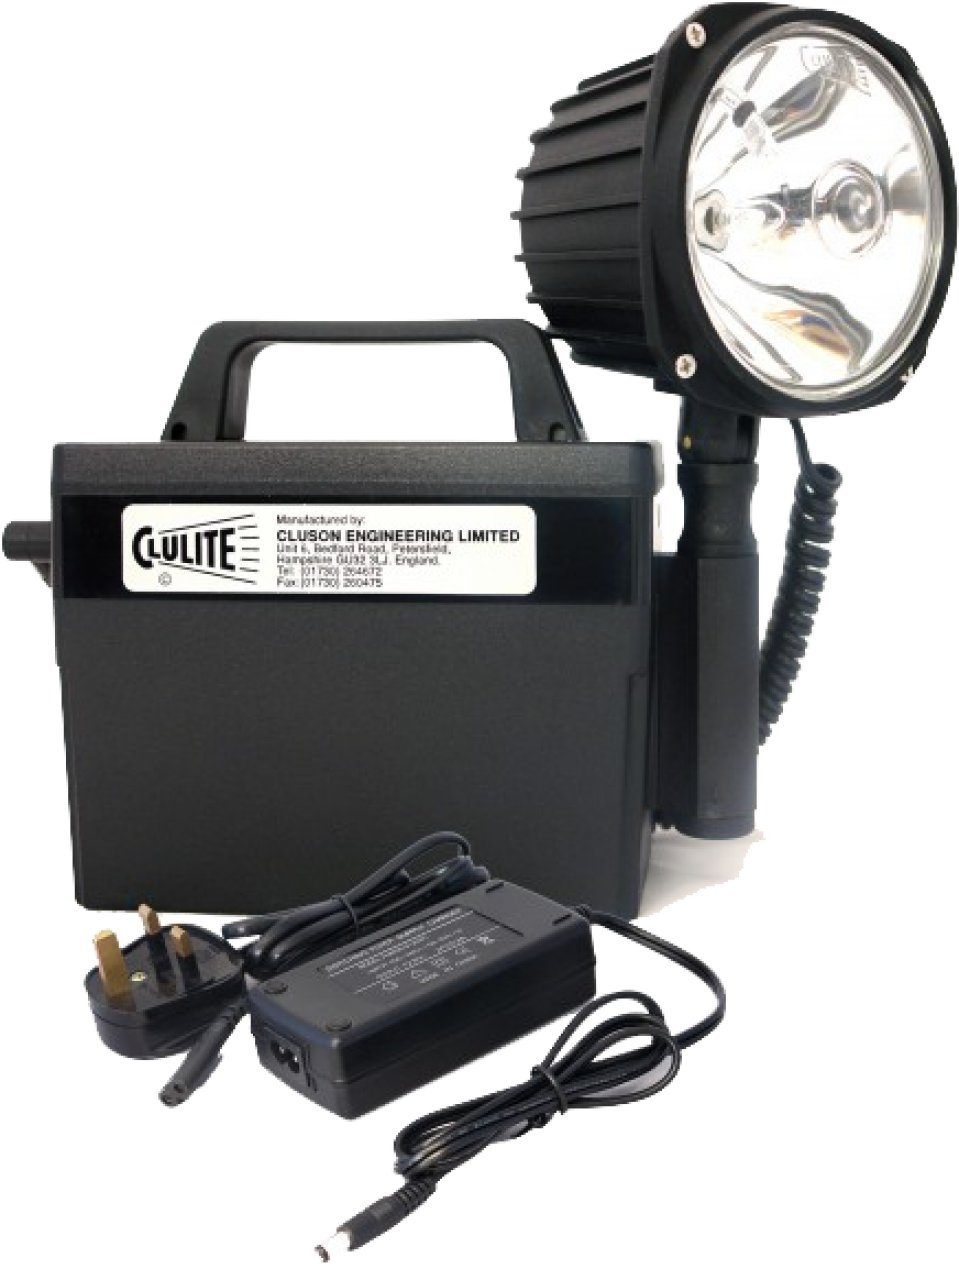 Cluson CB2-L2 Clubman Deluxe Li-Ion 17.6Ah High-Power Lamp/Torch